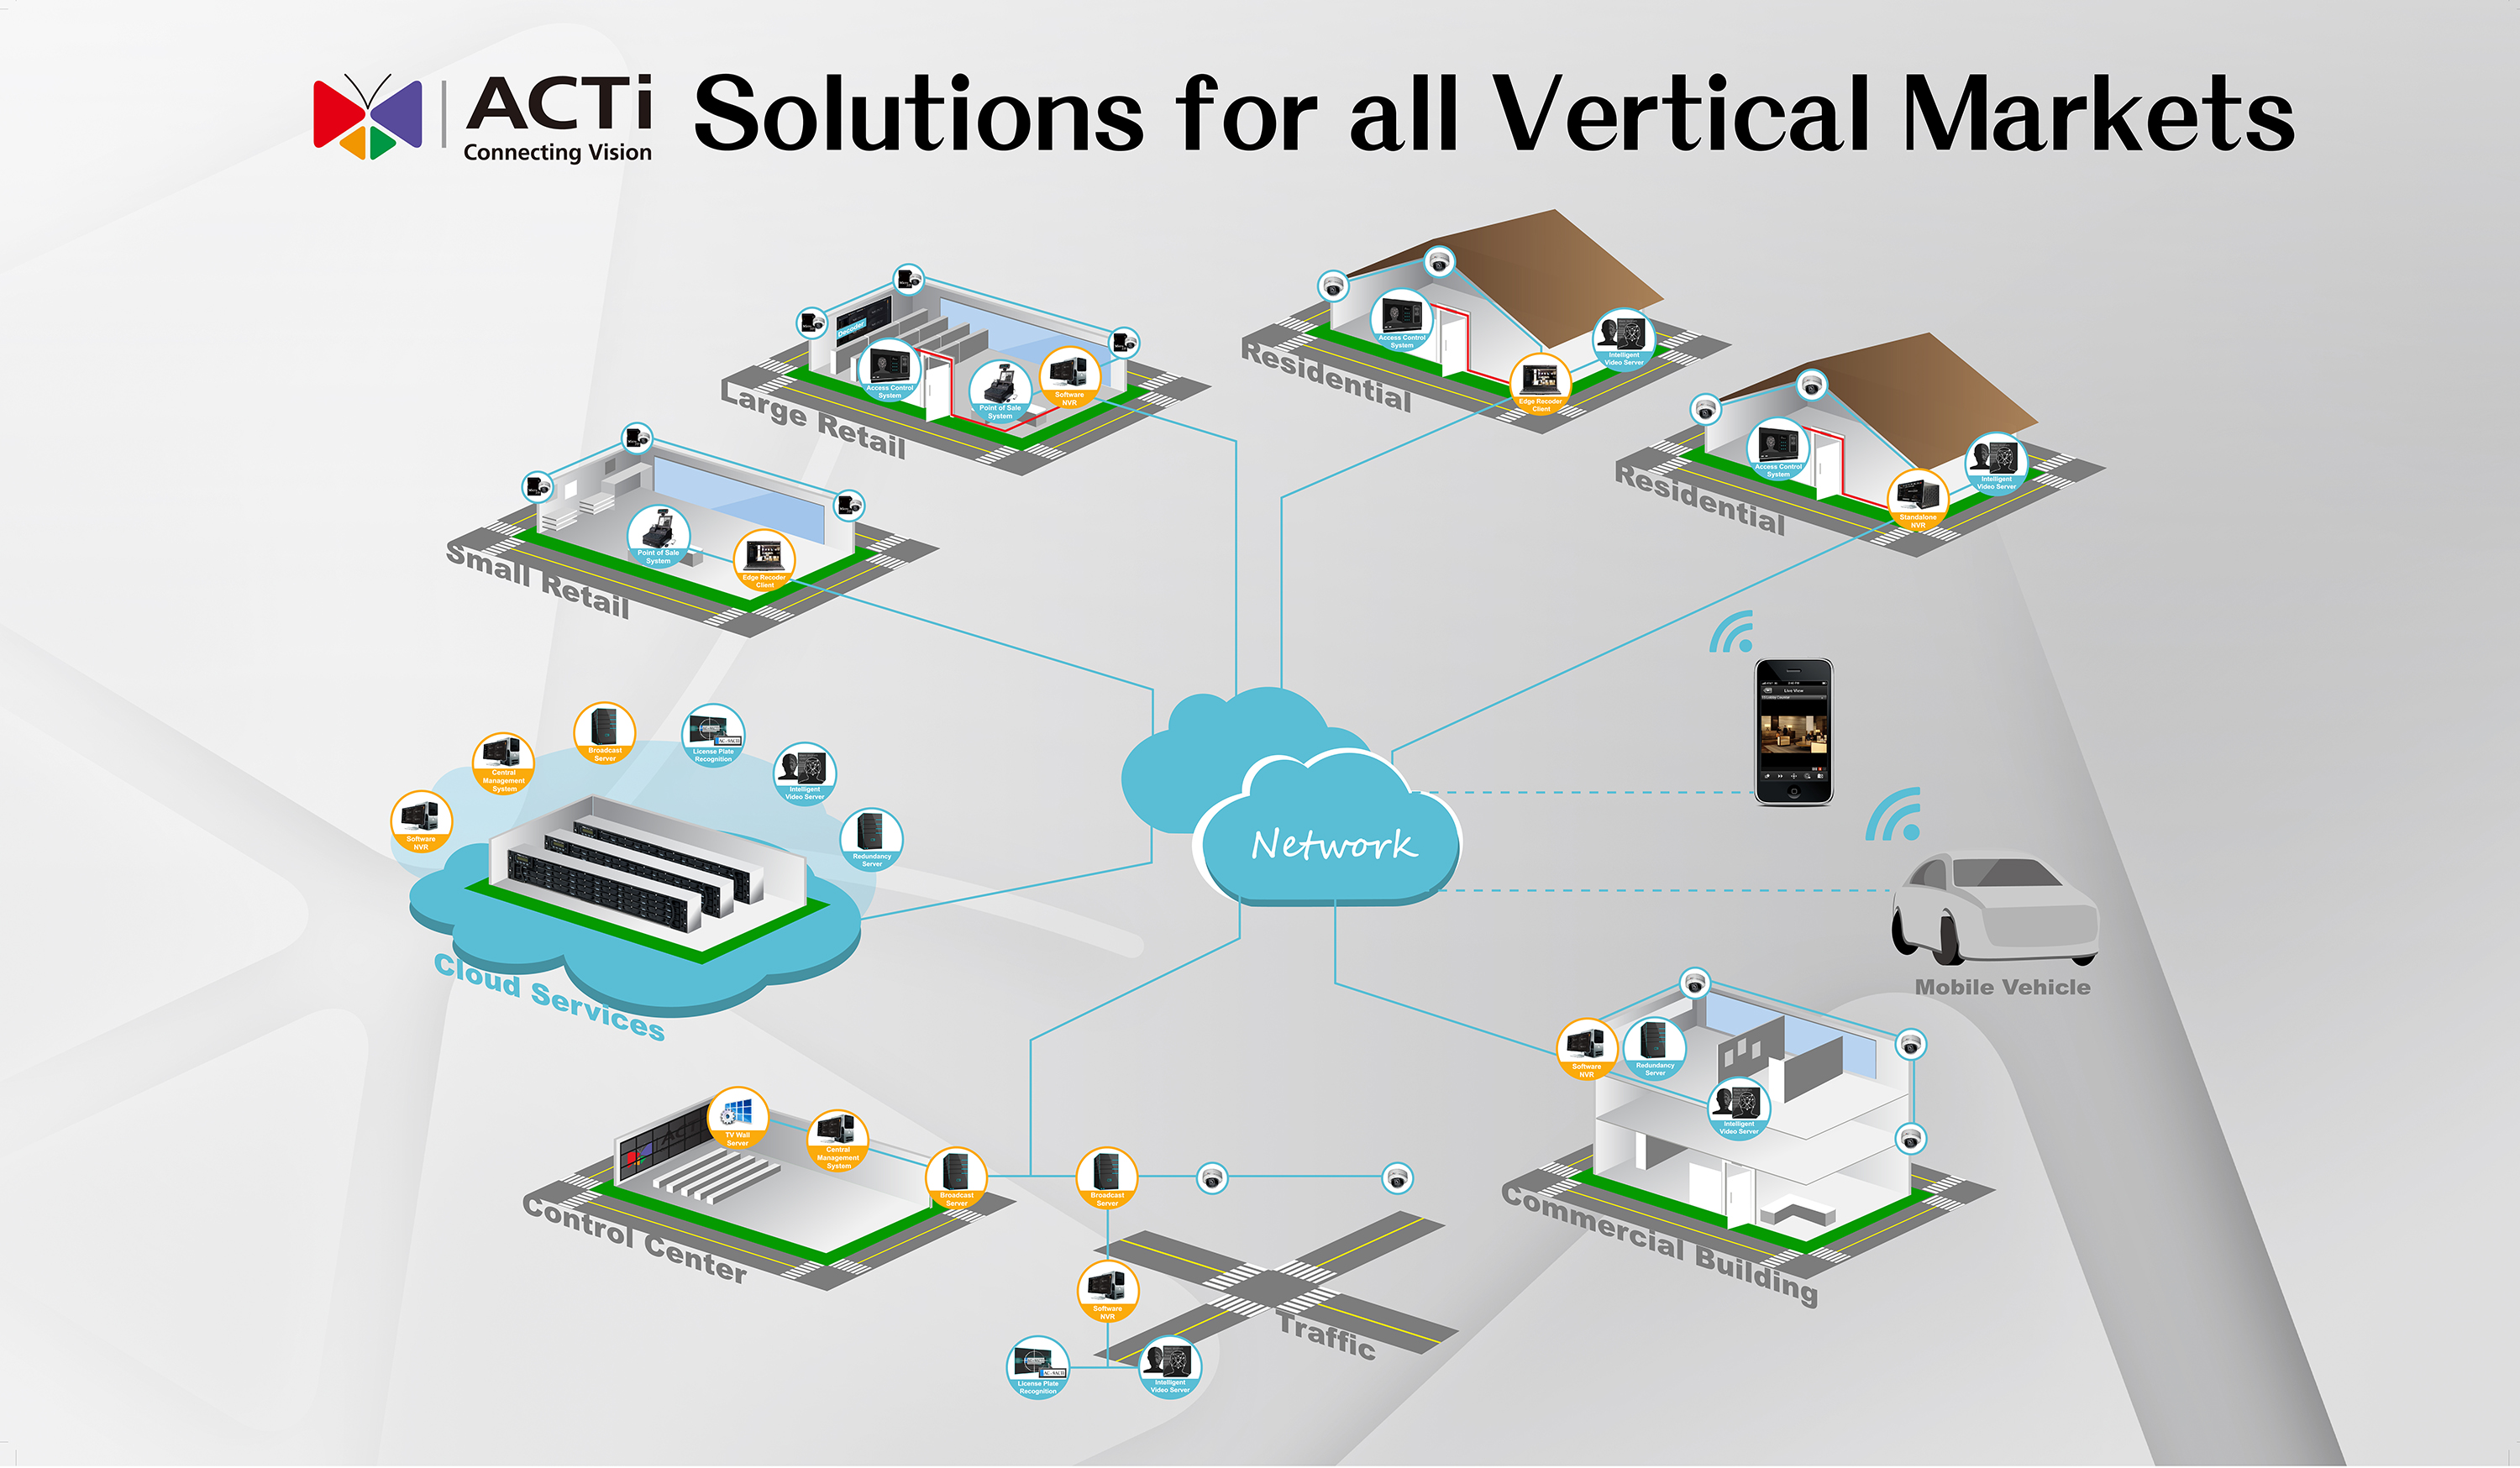 acti-ip-surveillance-for-all-vertical-markets.jpg